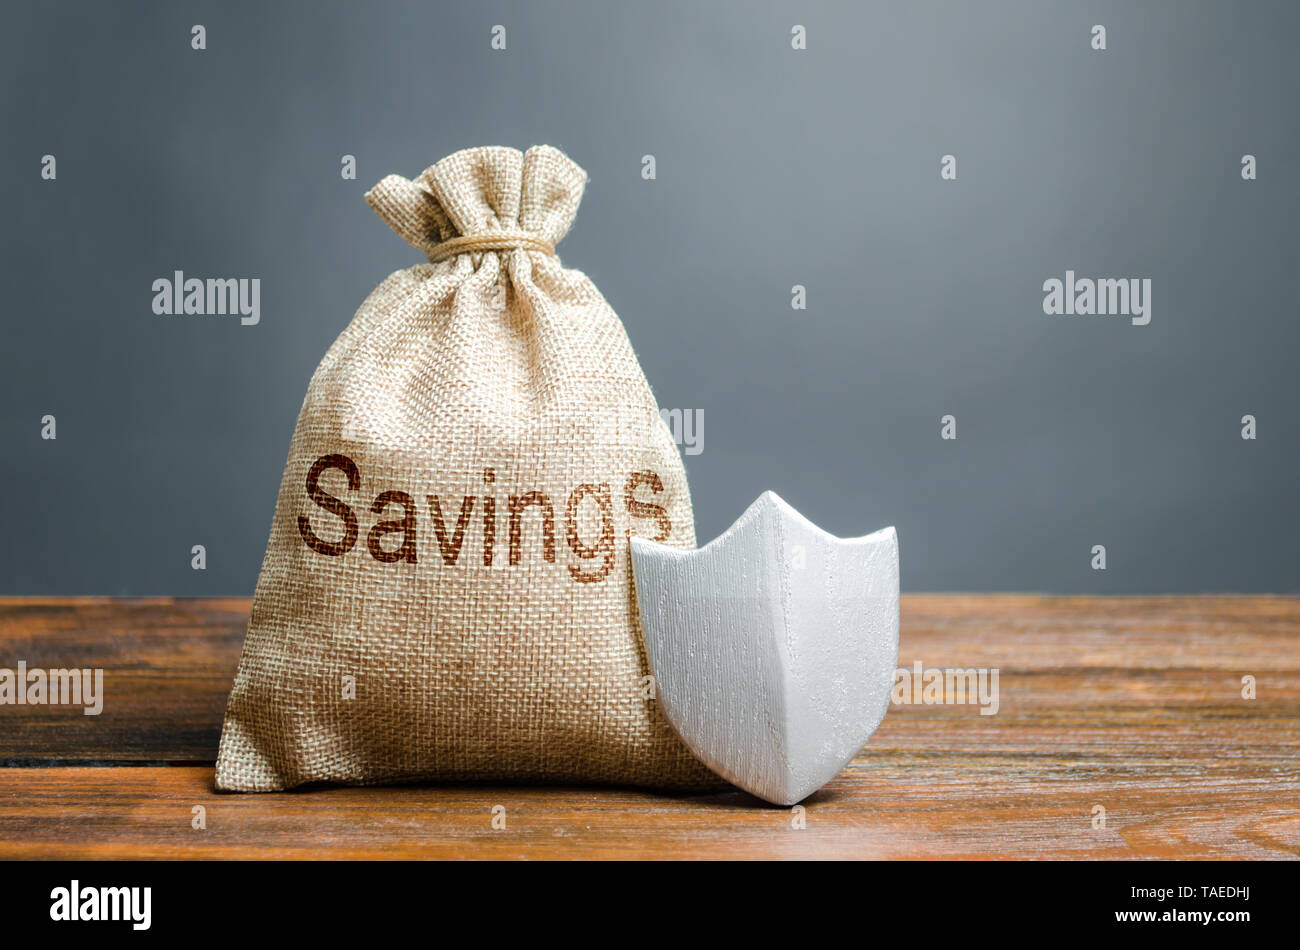 Bag with the words Savings and protection shield. Concept of protection of savings and cash, guaranteed deposits. Compensation for losses in inflation - Stock Image